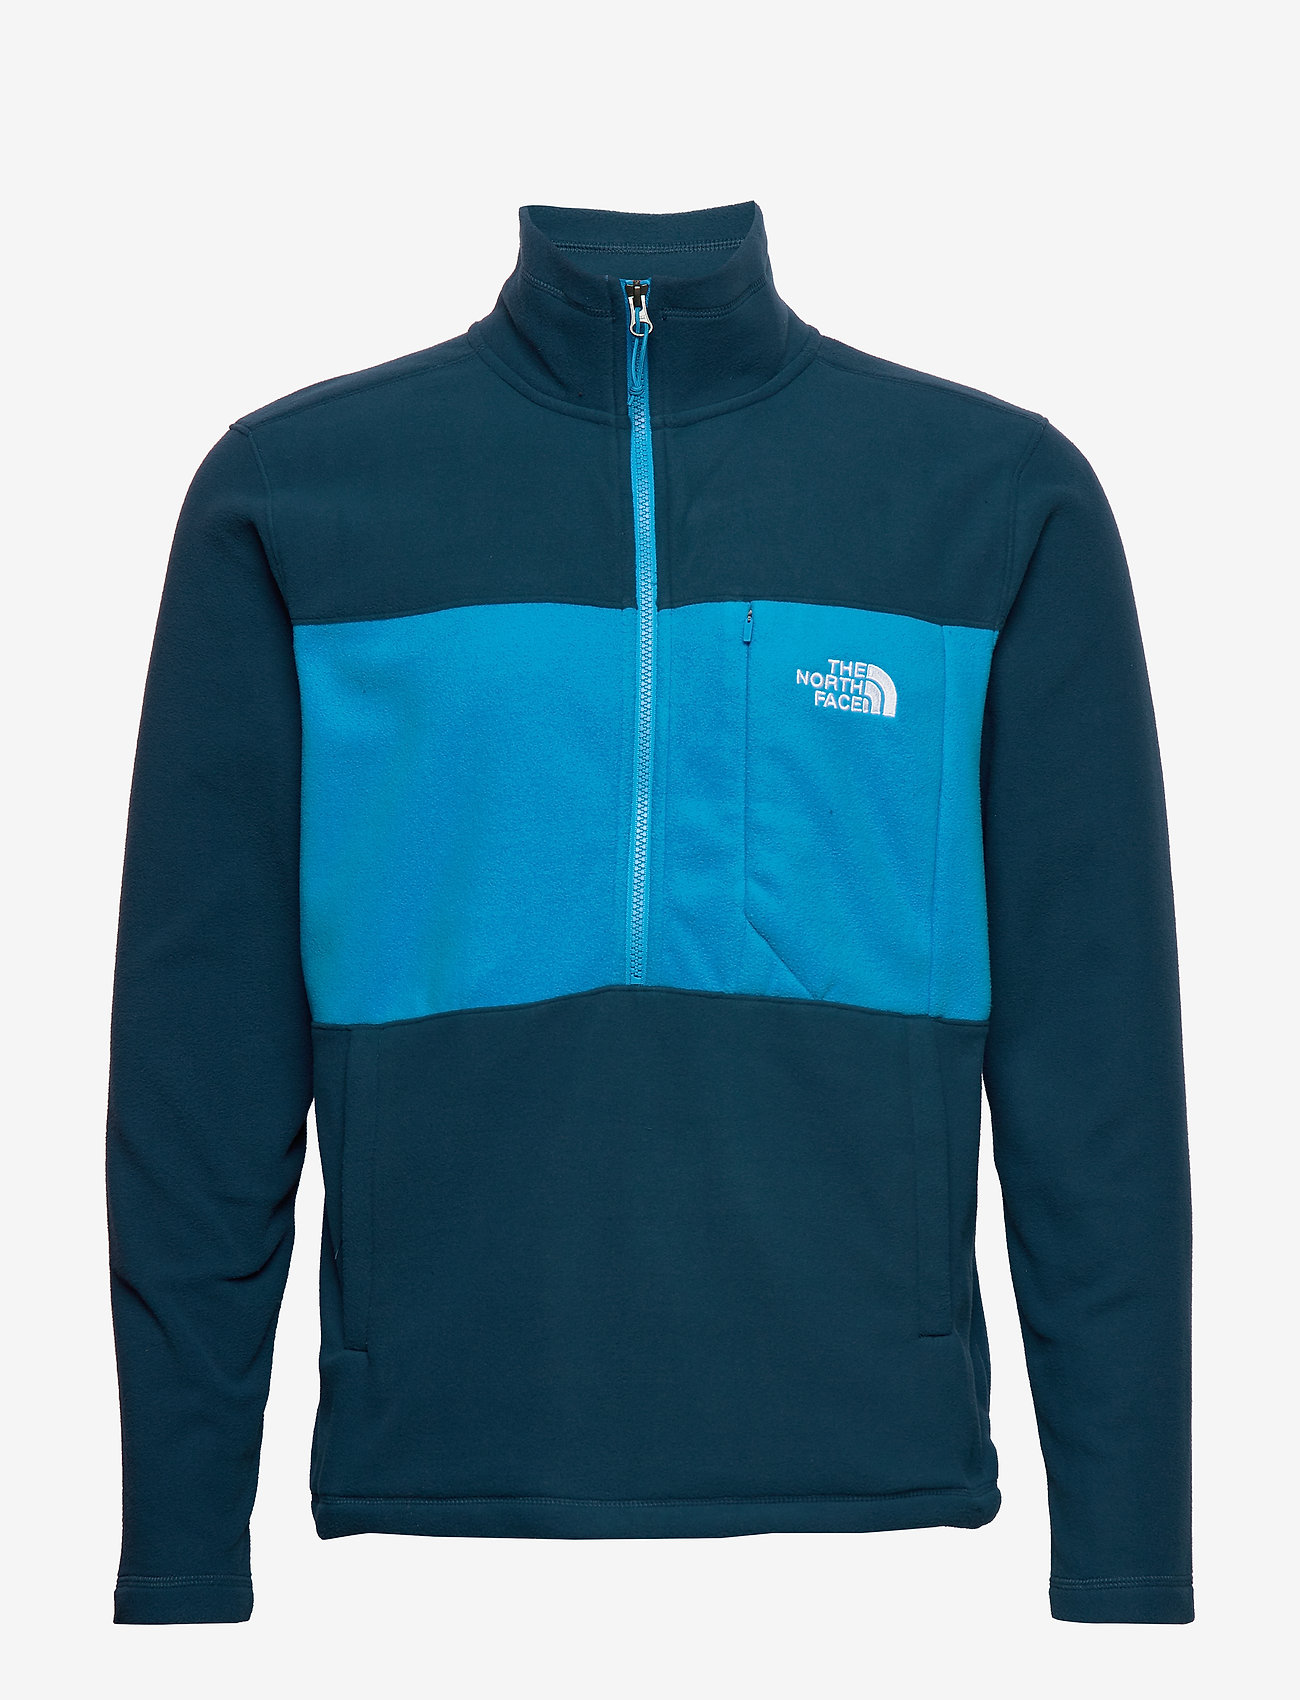 The North Face - M BLOCKED 1/4 ZIP - mittlere lage aus fleece - bluwgtl/clrlkbl - 0